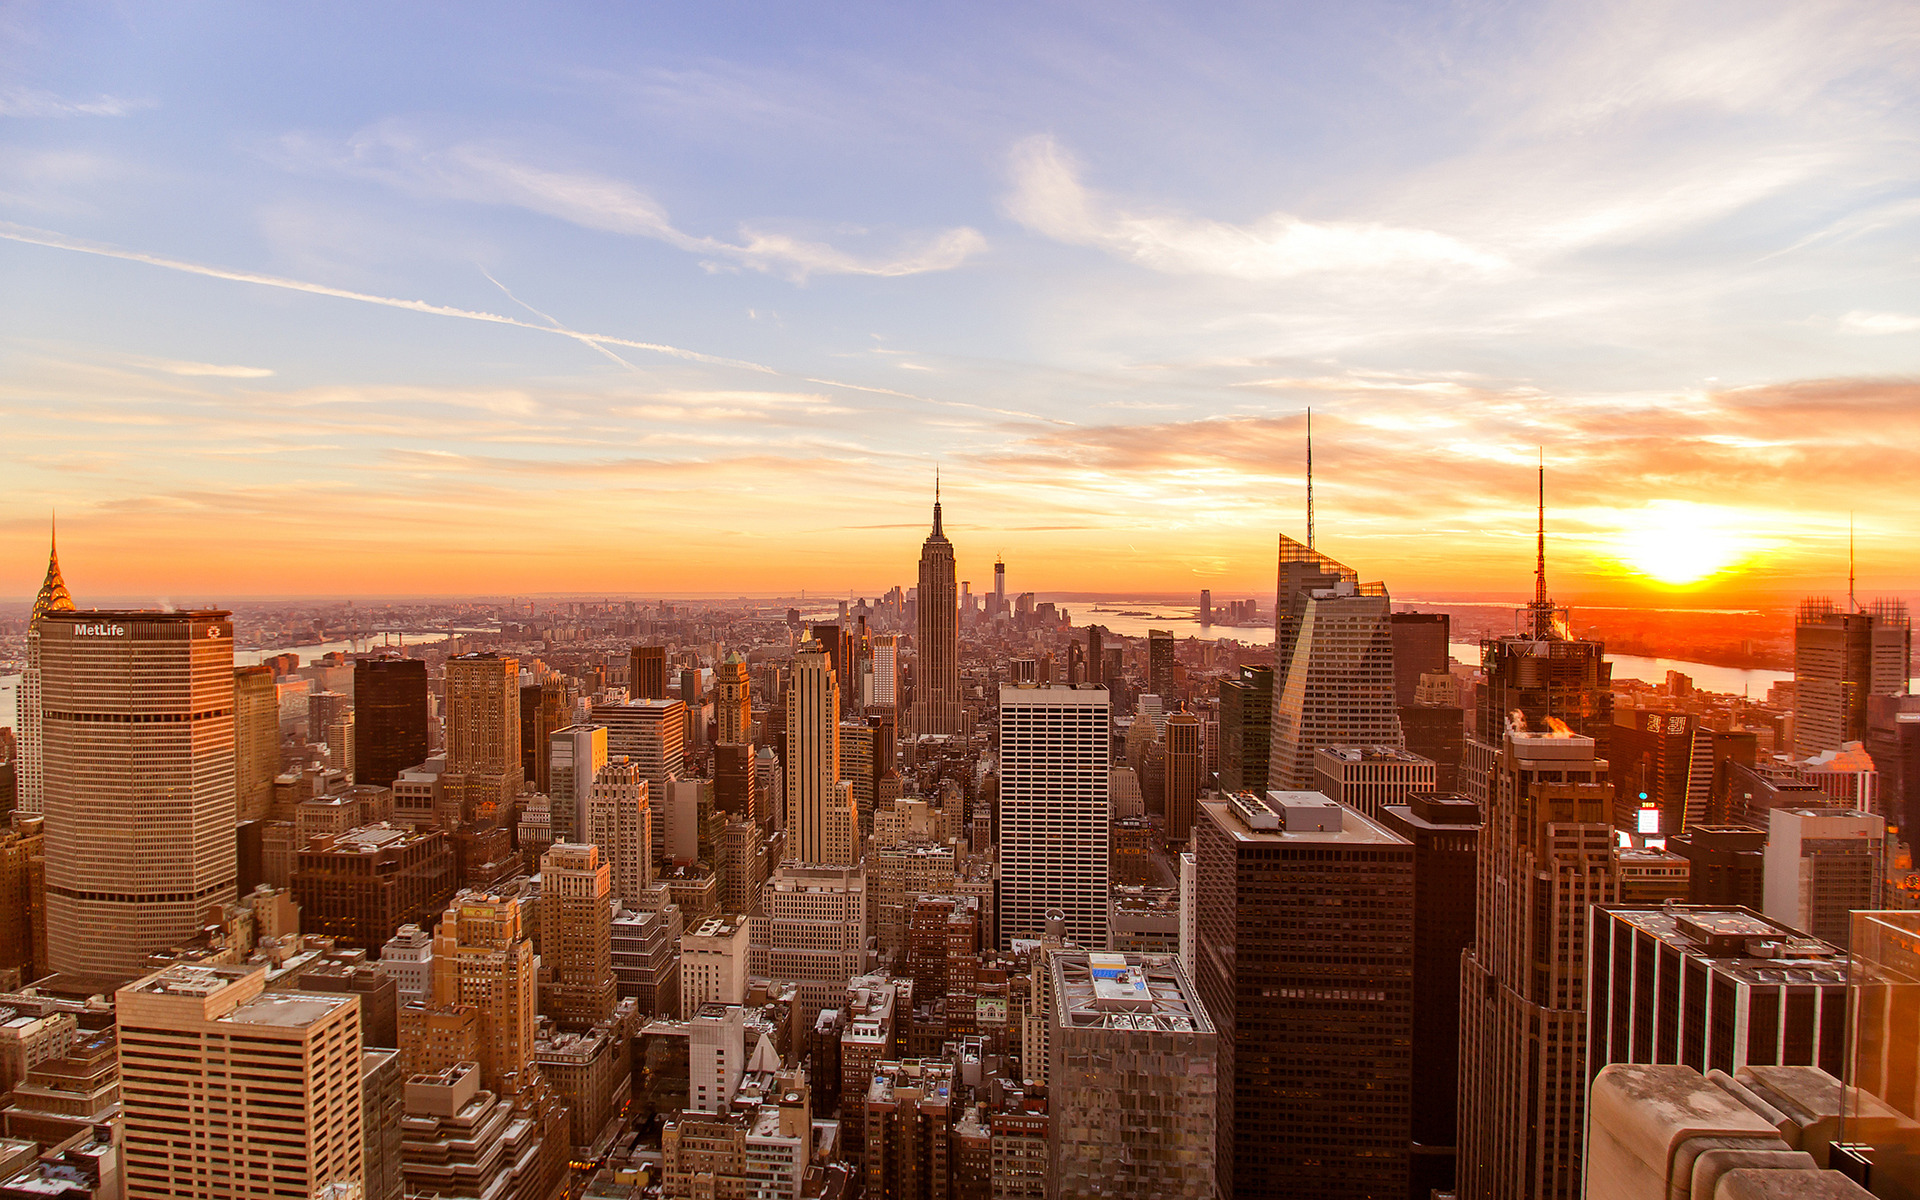 new-york-world-hd-wallpaper-1920x1200-9853